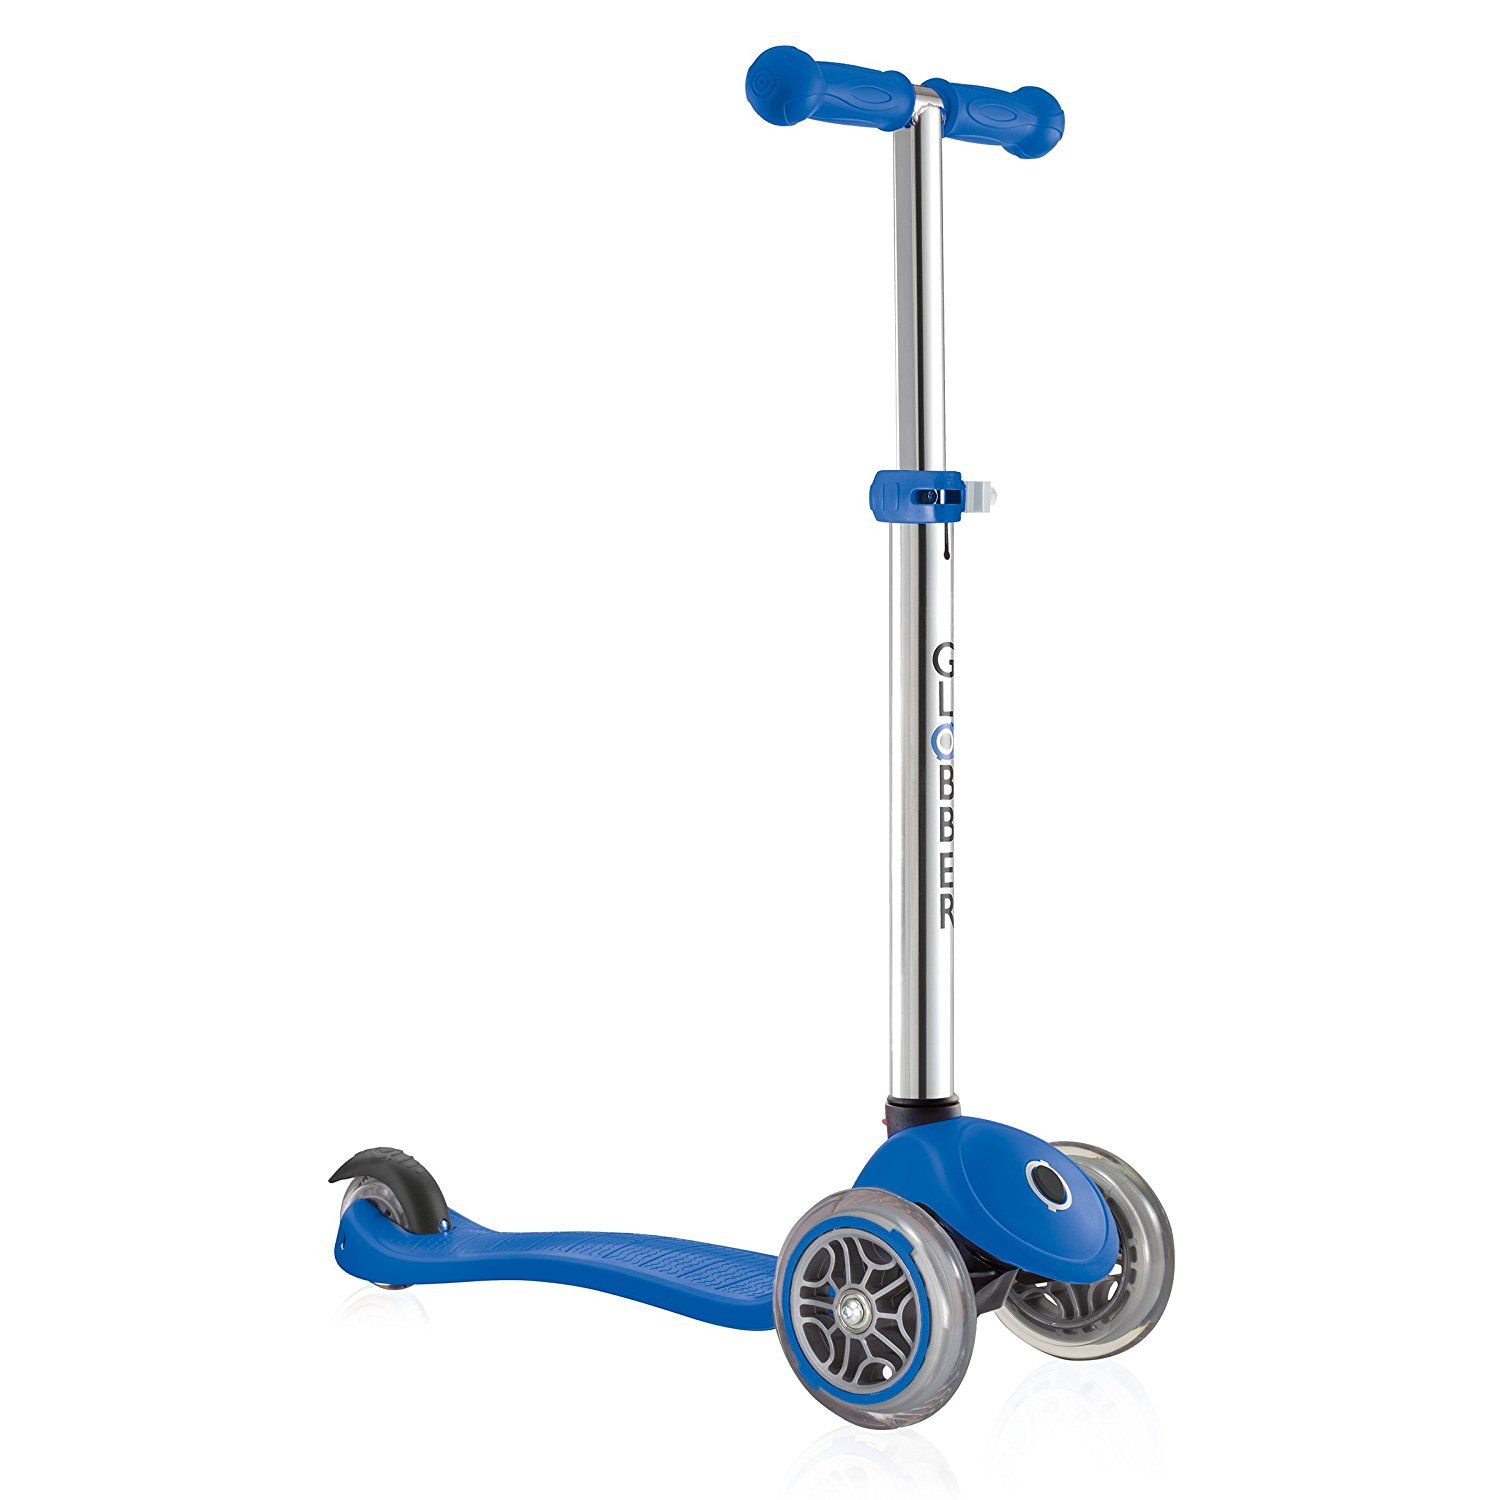 The Best Kids Scooters of 2021 Kids scooter, Best